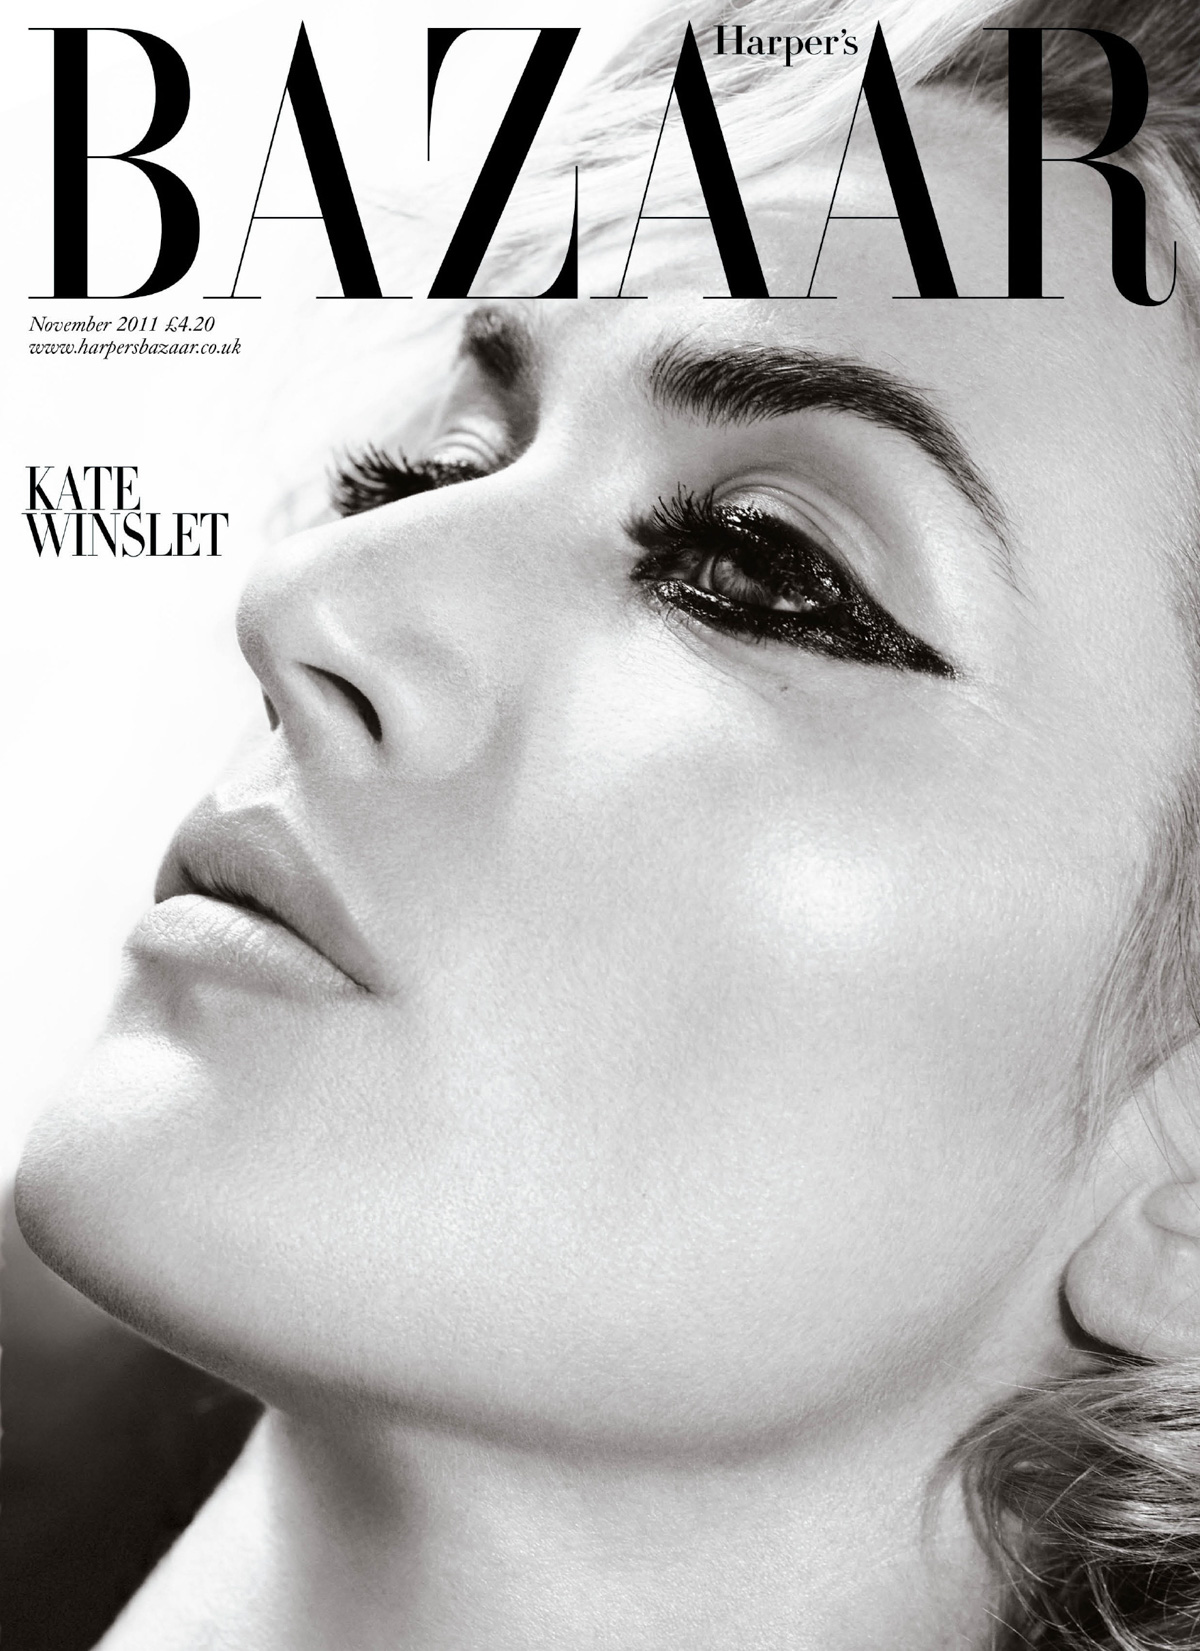 house-of-usher-harpers-bazaar-magazine-32